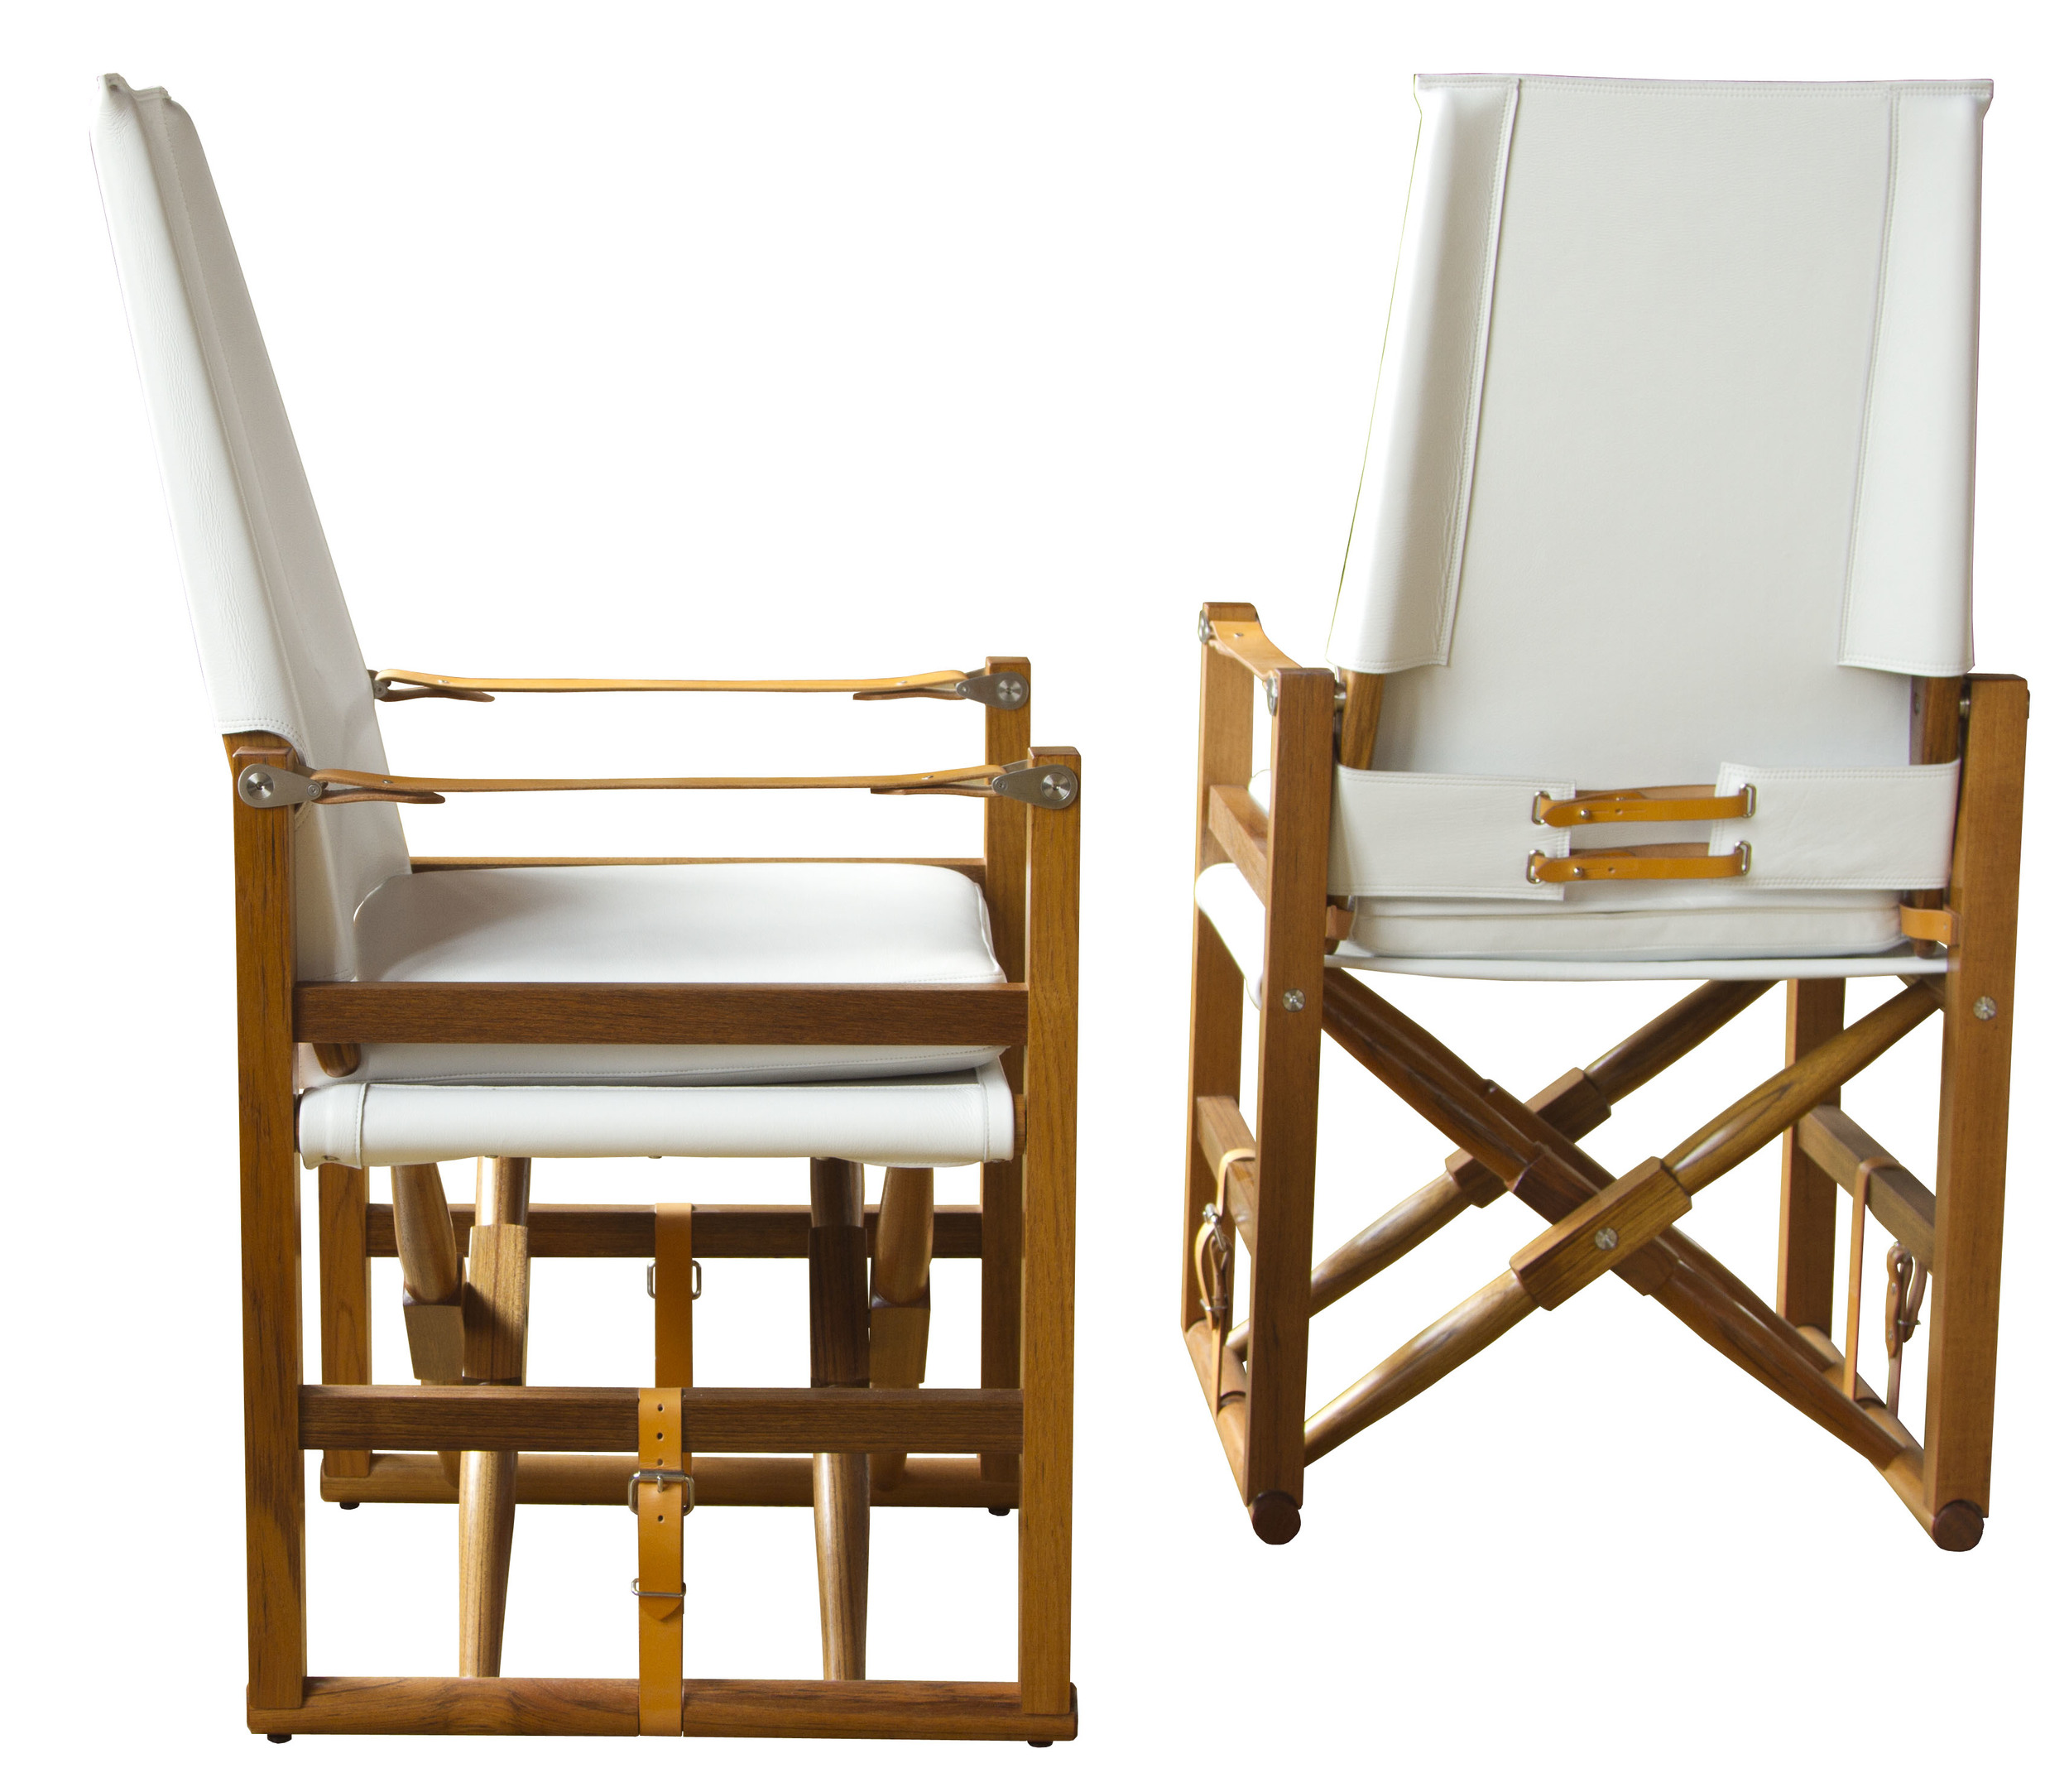 Large Cabourn Folding Chair  Oiled Teak with Moore & Giles Deer Run: Arctic White and Coach English bridle leather strapping